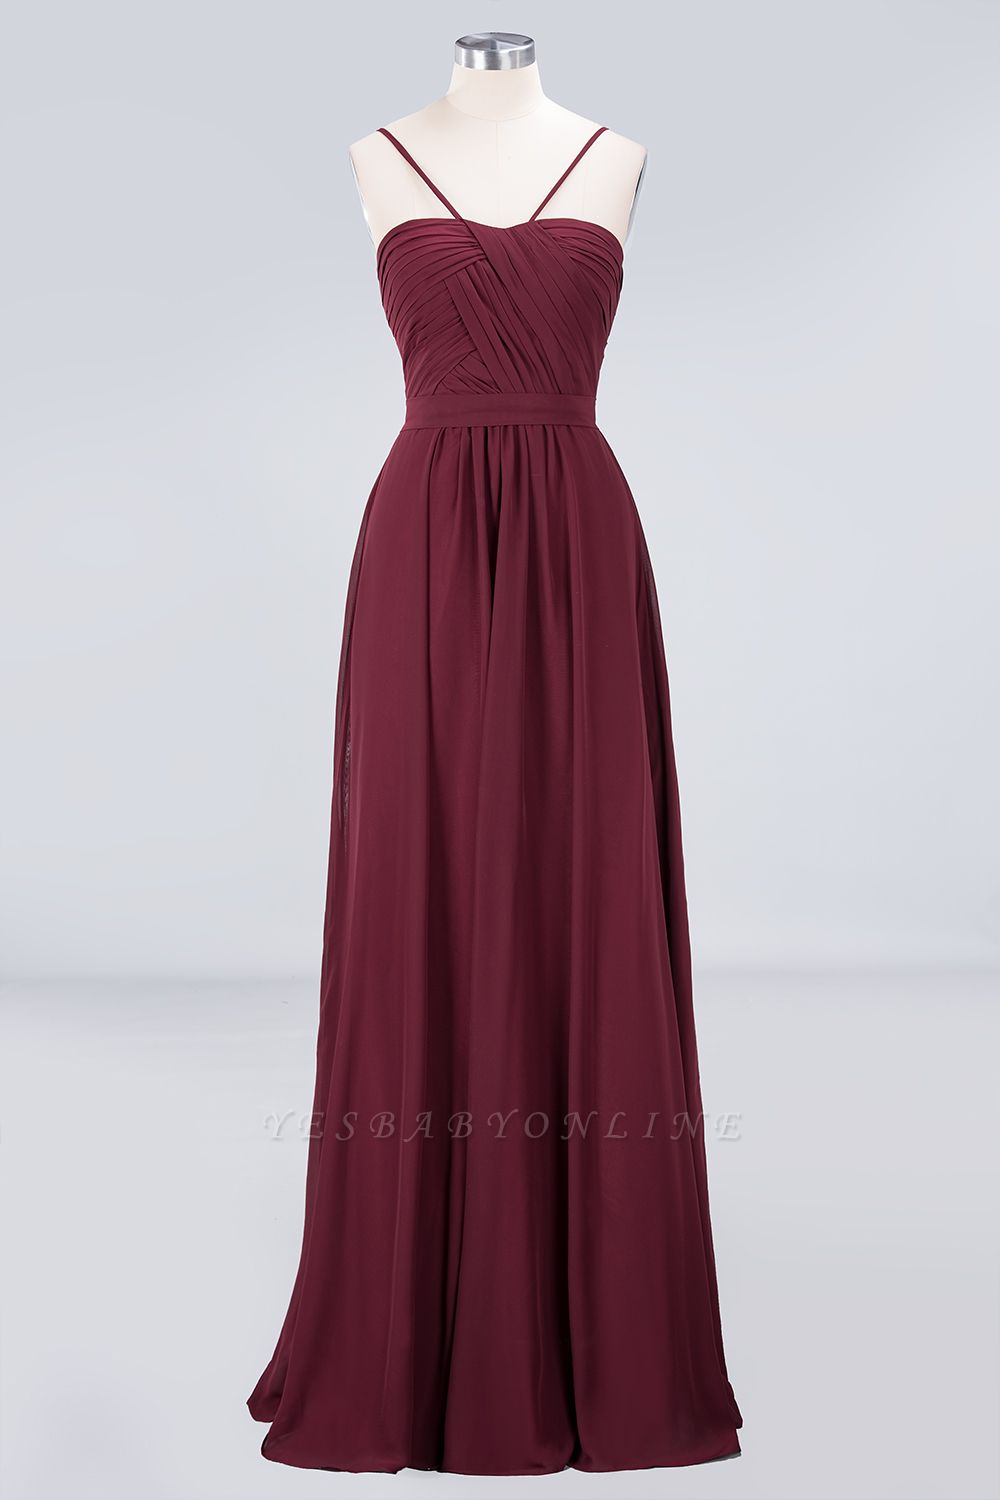 A-Line Sweetheart Spaghetti-Straps Backless Floor-Length  Bridesmaid Dress with Ruffles